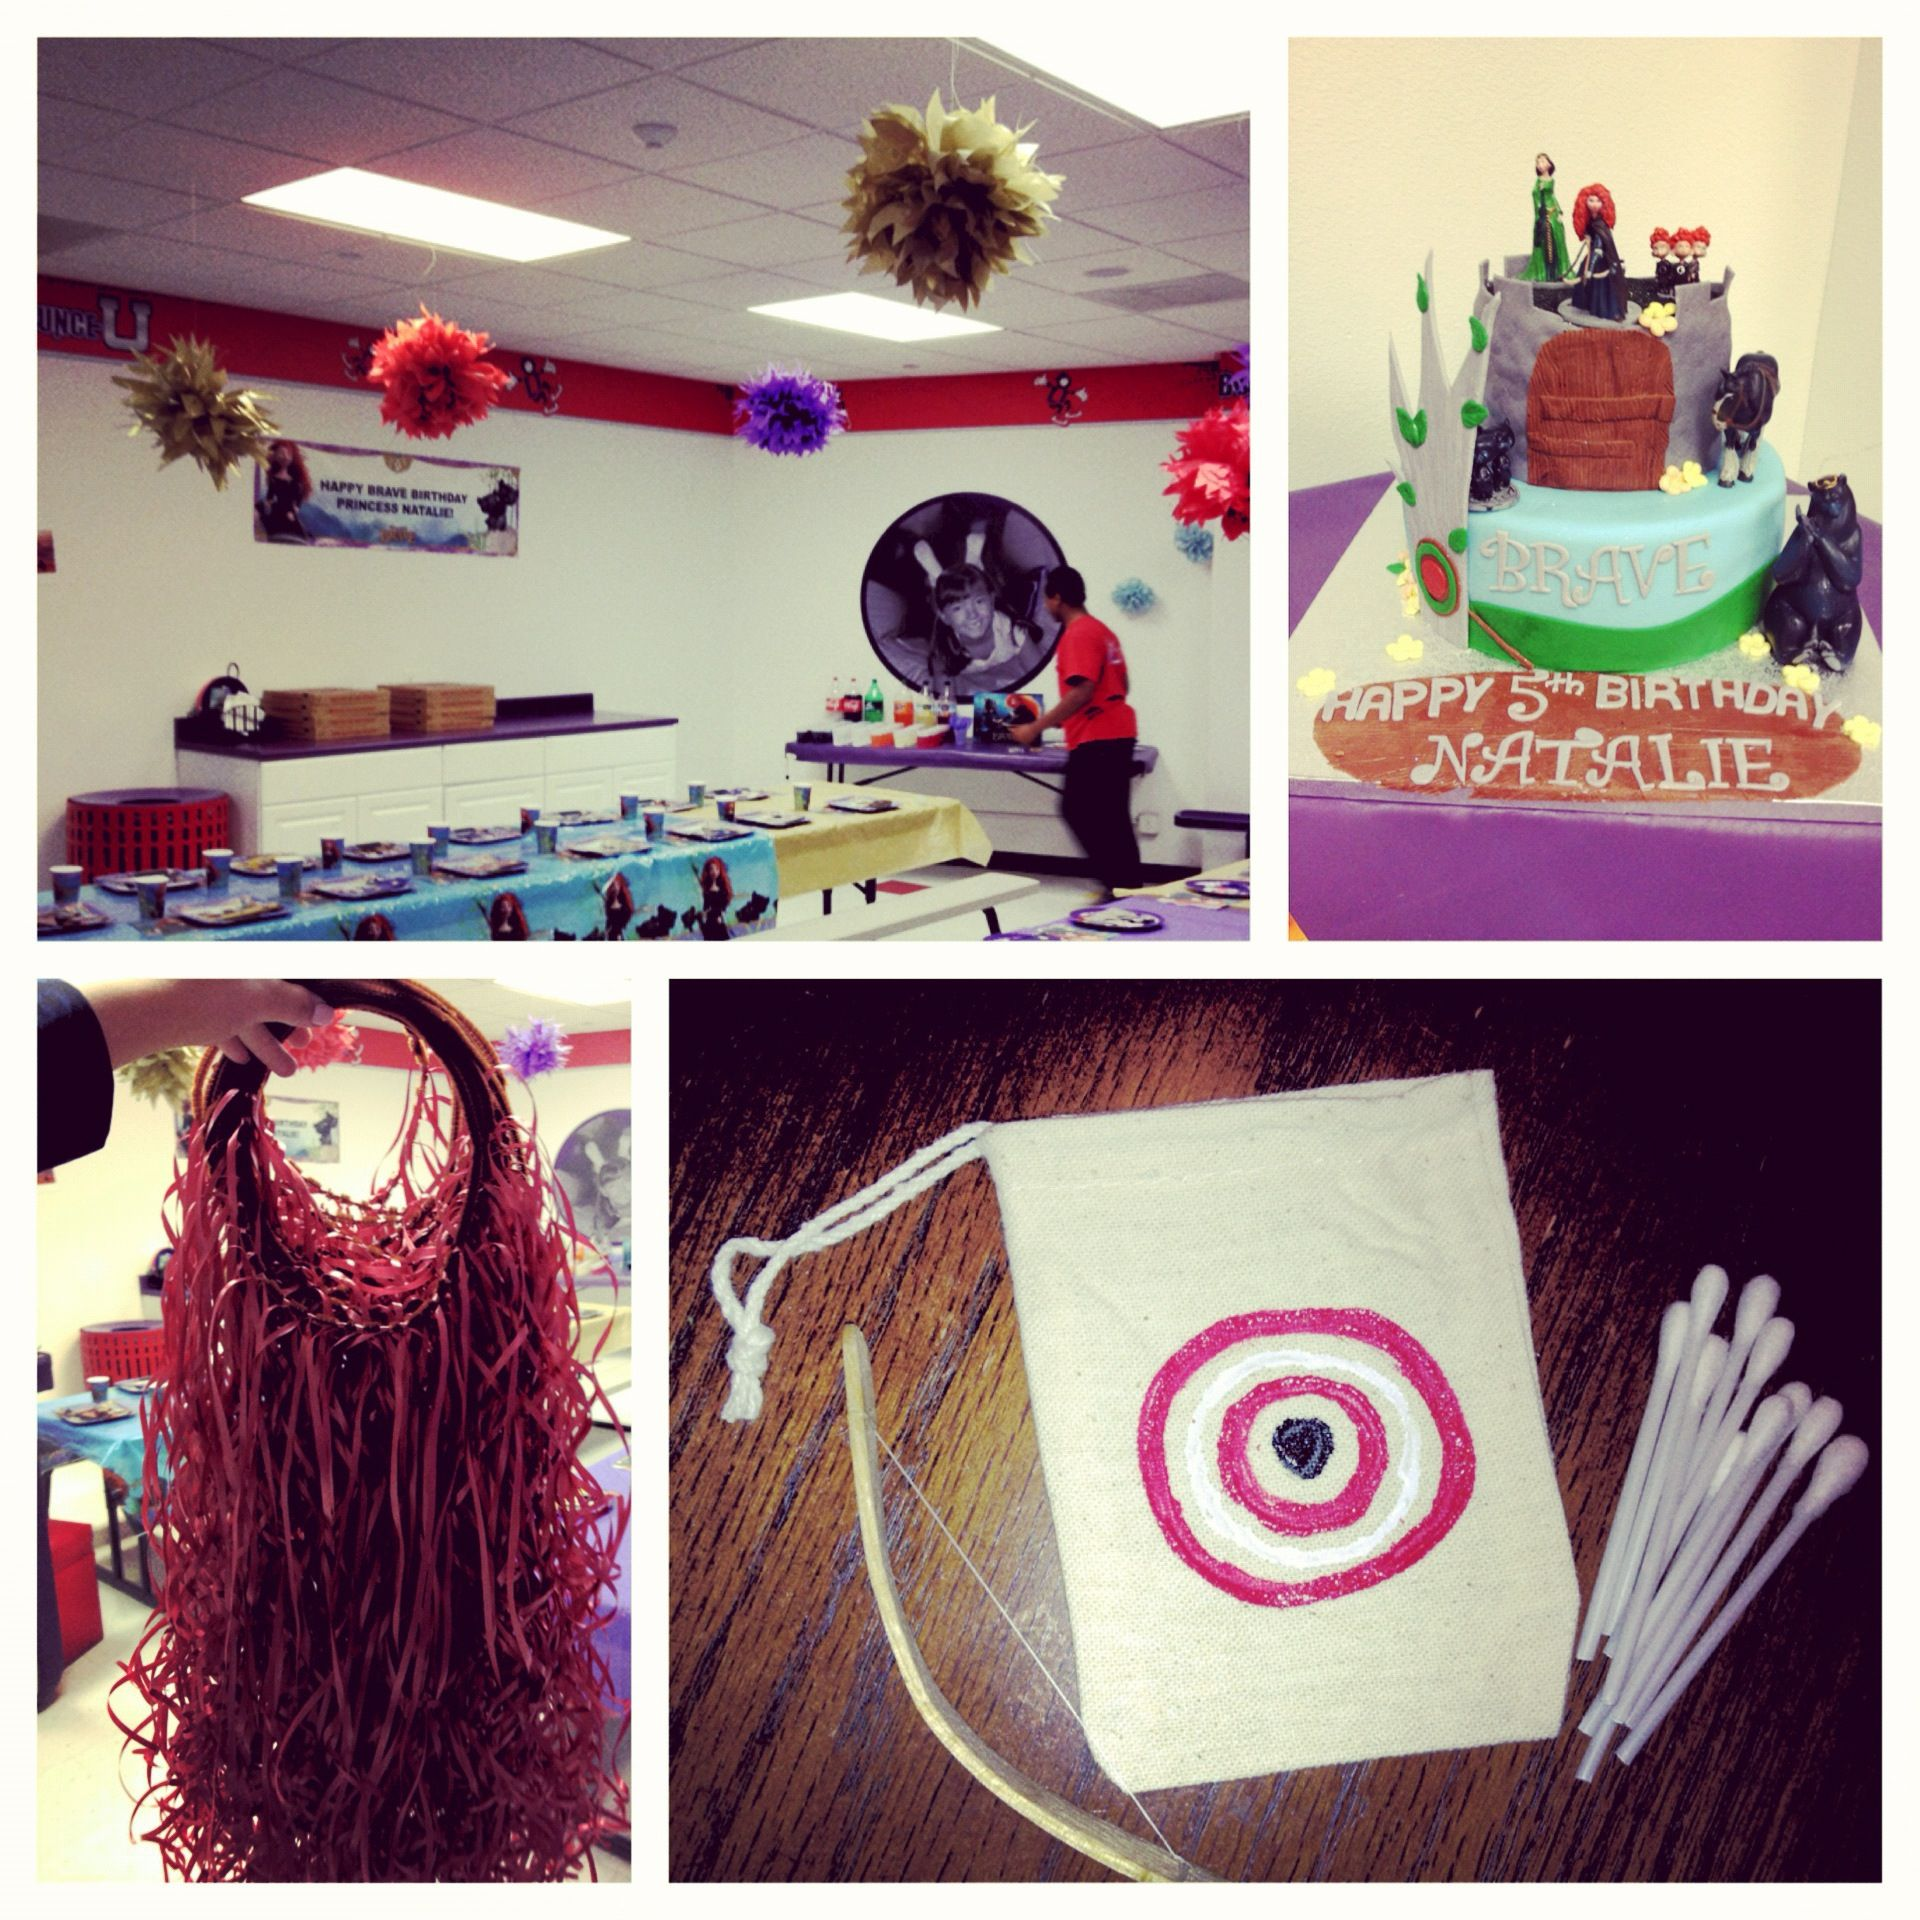 This was the end result for my God daughters Brave birthday party!! Mini bow (Popsicle sticks) and arrows (q-tips). Head pieces made with red curling ribbon for the girls and an amazing cake!!!